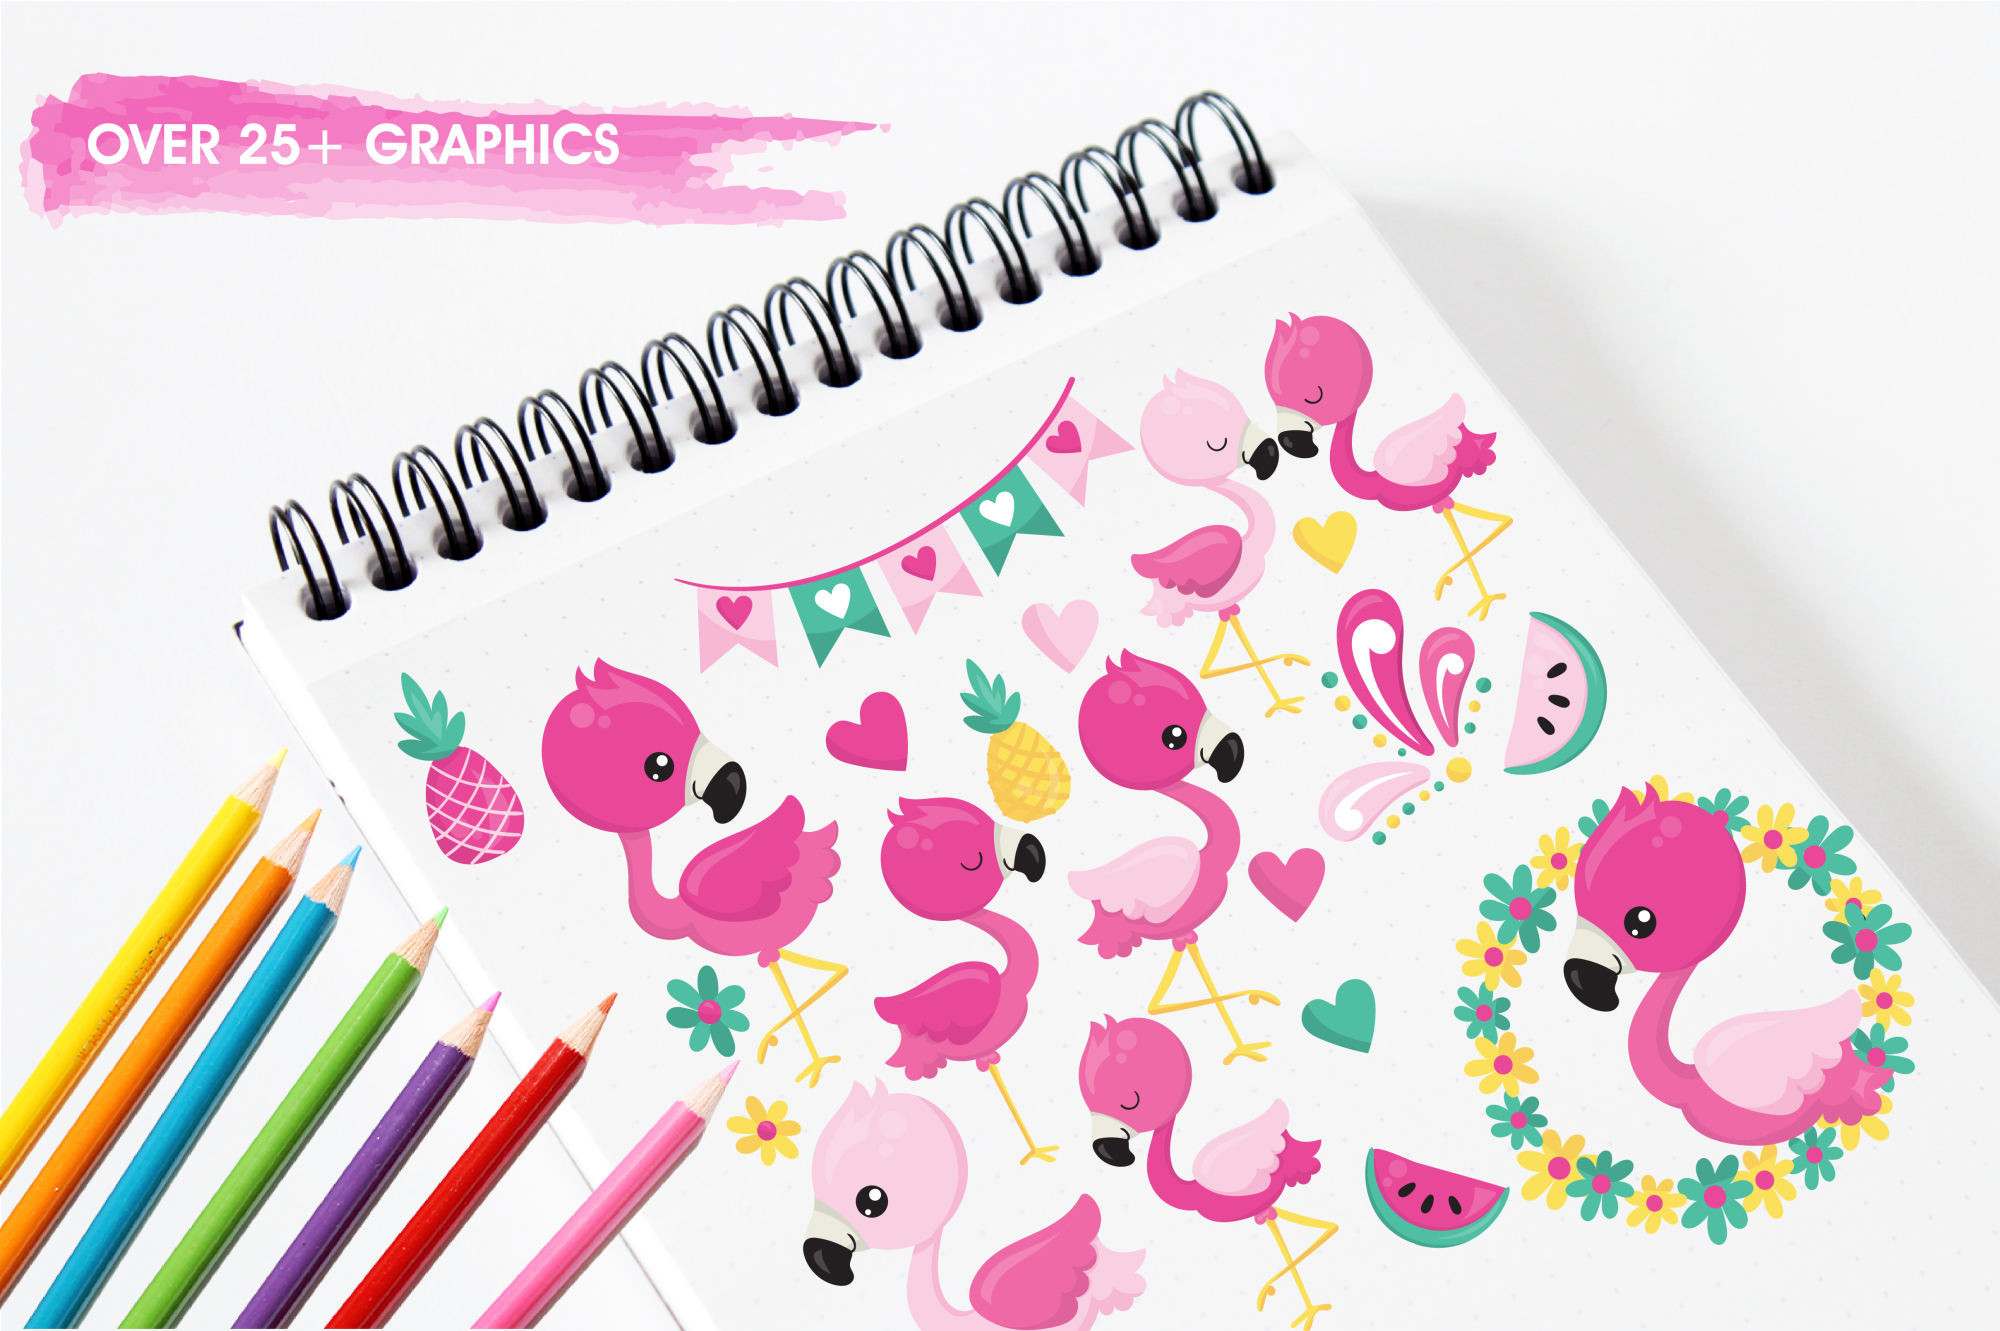 Flamingo graphics and illustrations example image 3